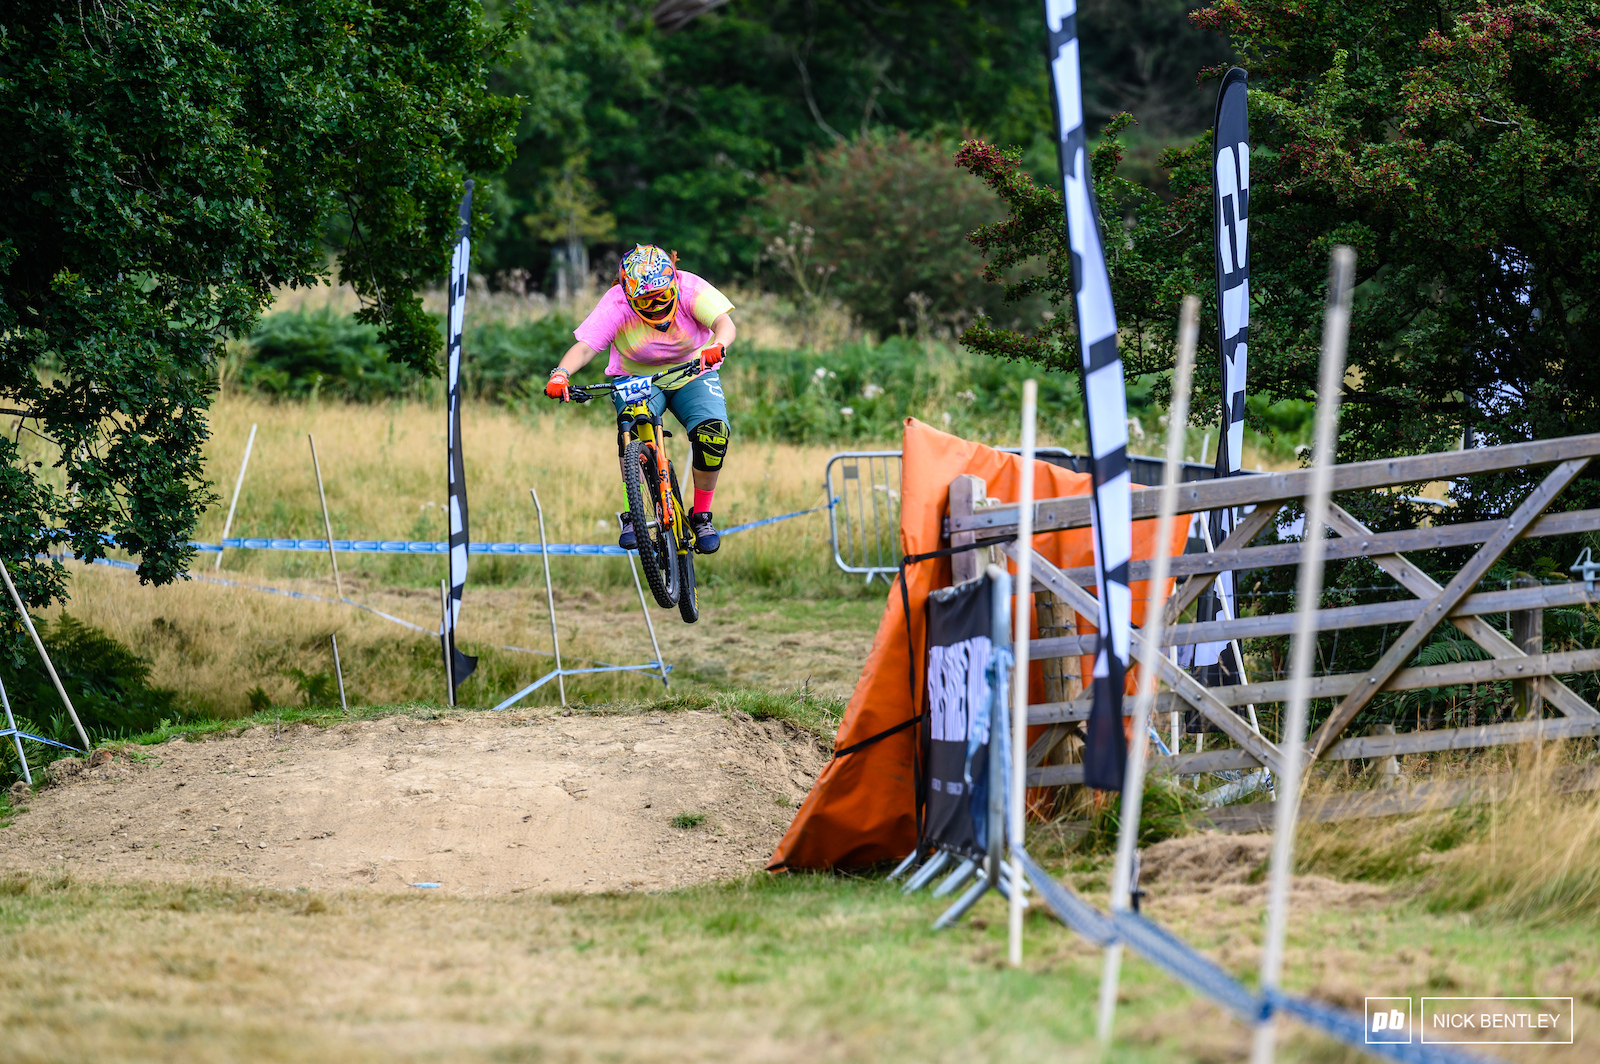 Courtney Abbiss pressing send on her race run